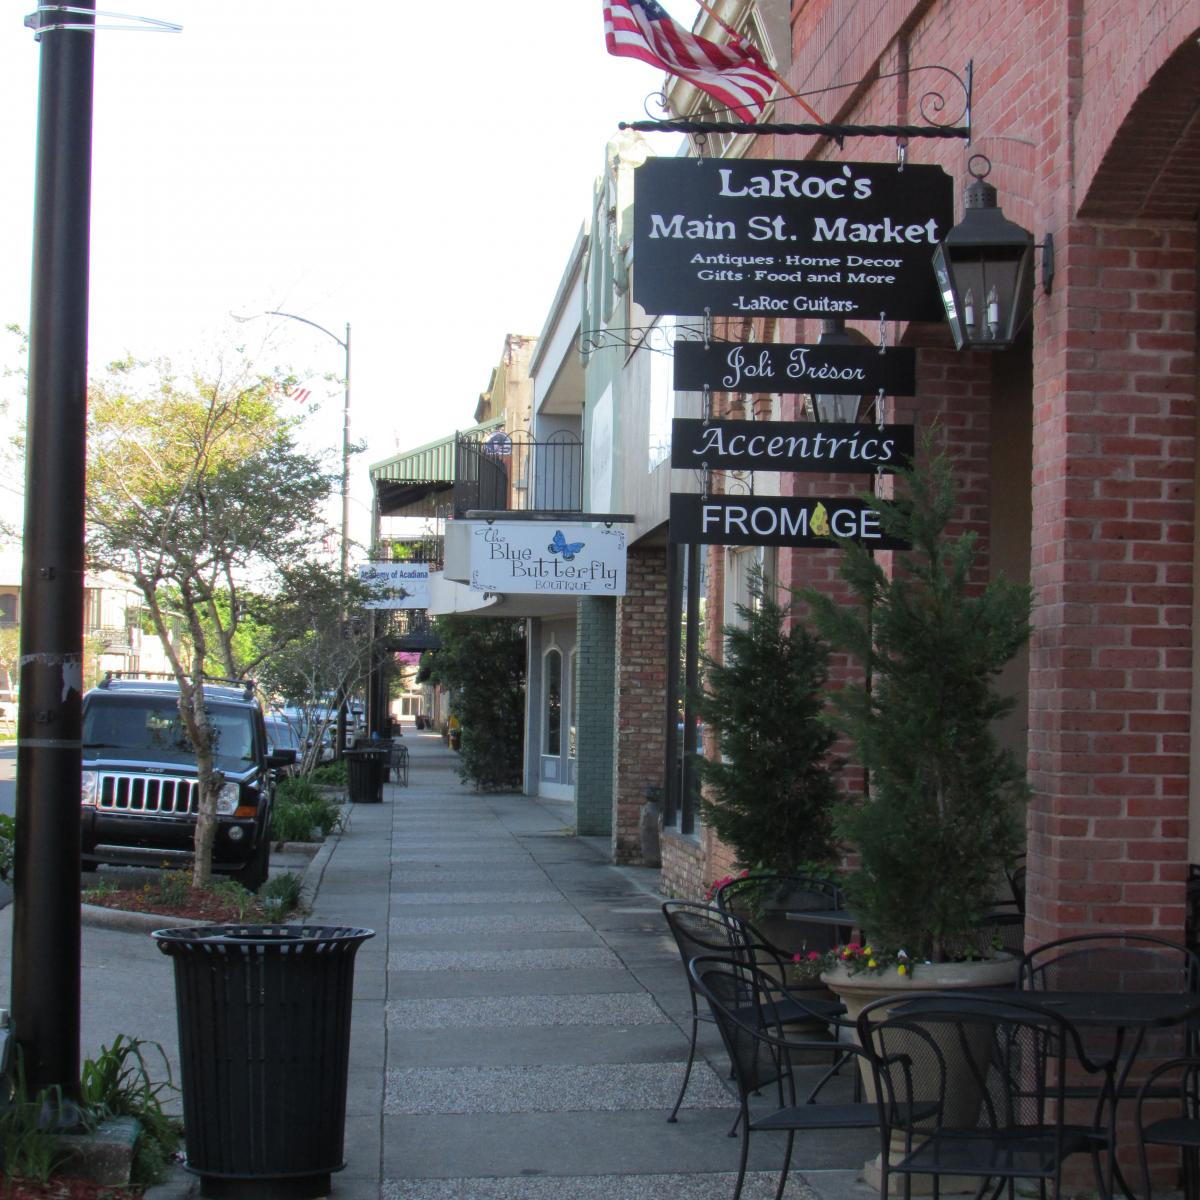 LaRoc's Main St. Antique Market and Fromage on Main Street New Iberia